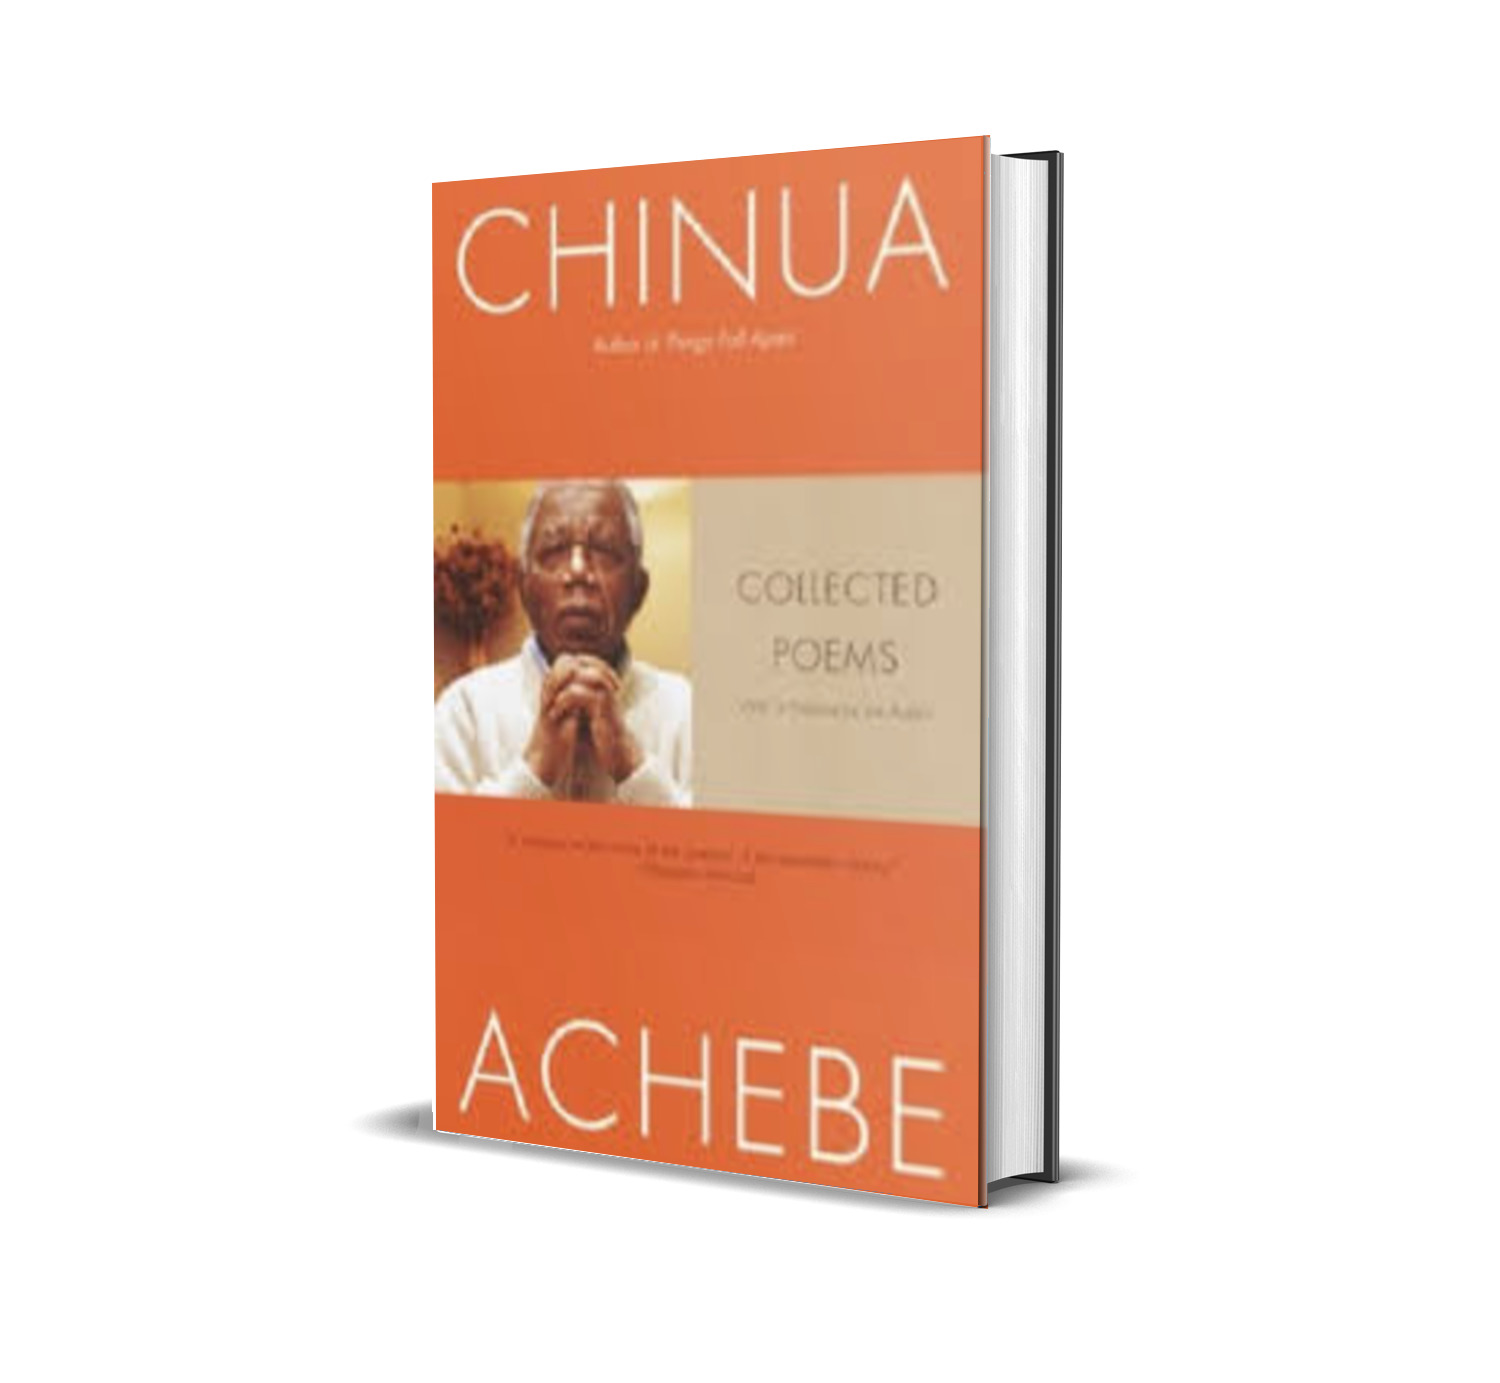 collected poems -chinua achebe